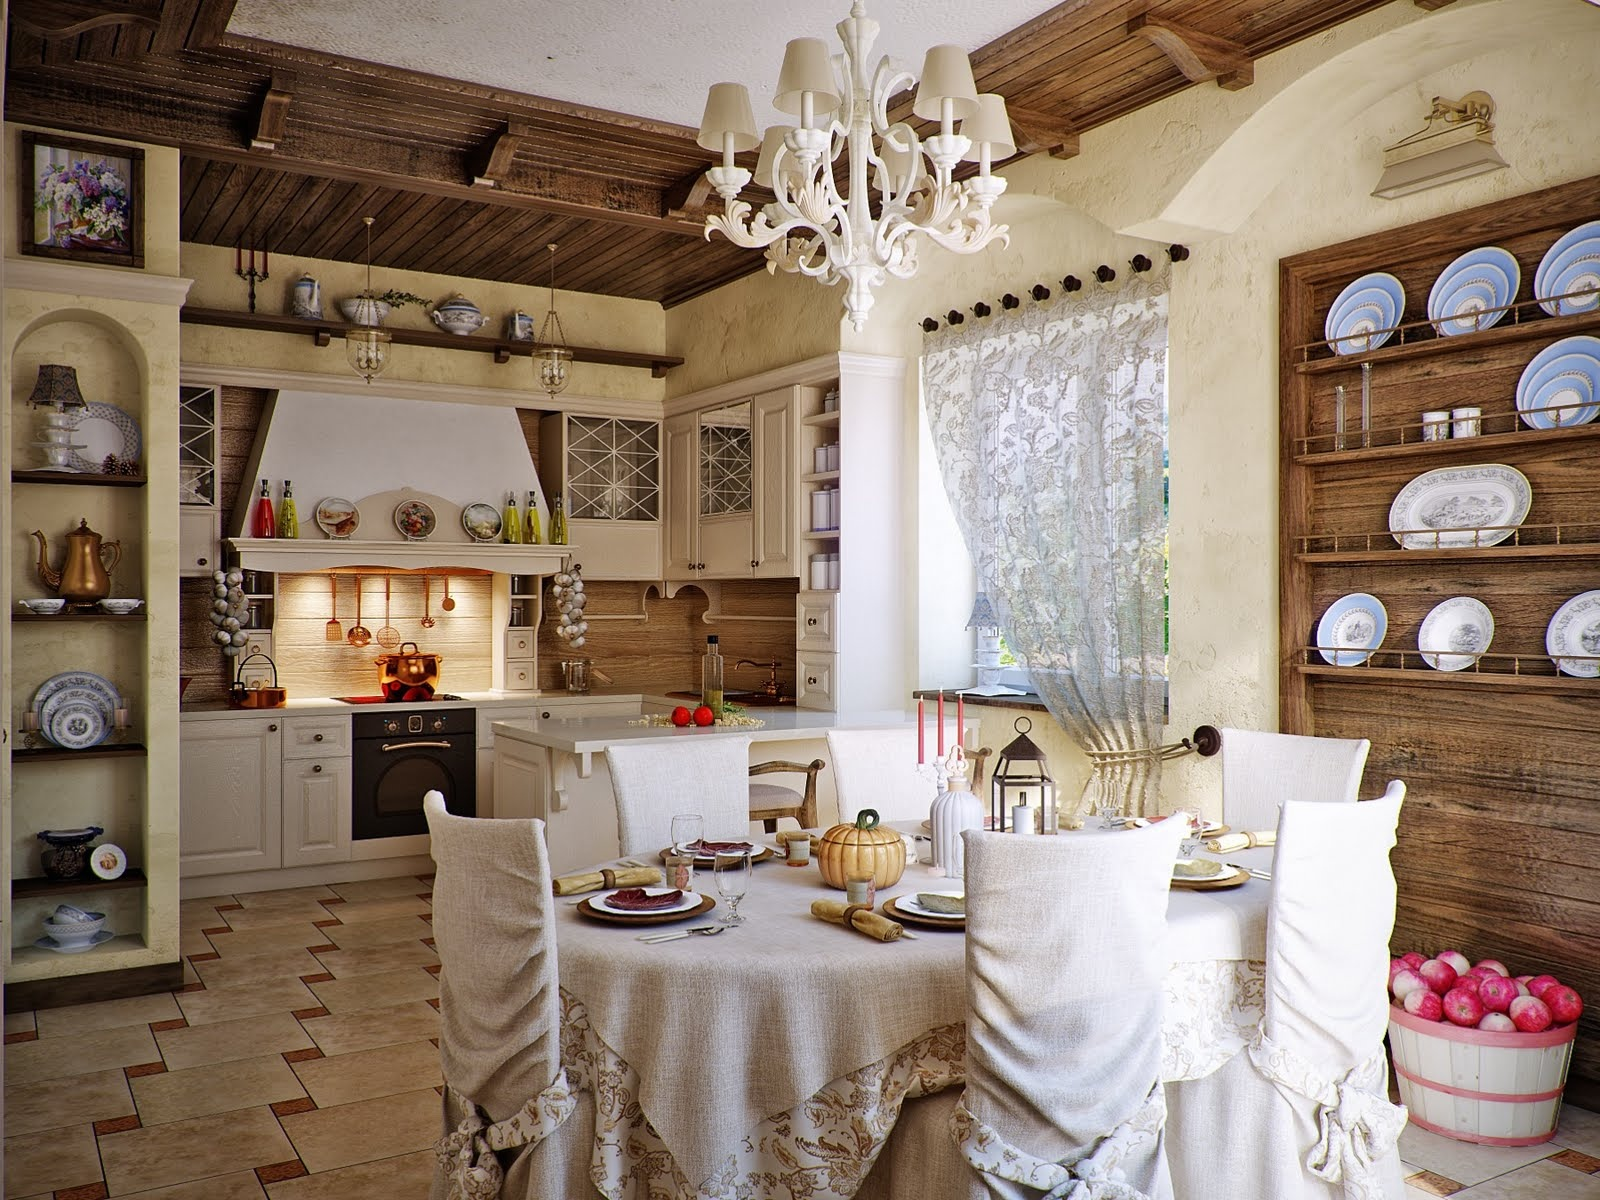 Kitchen Dining Designs: Inspiration and Ideas country chic kitchen ...